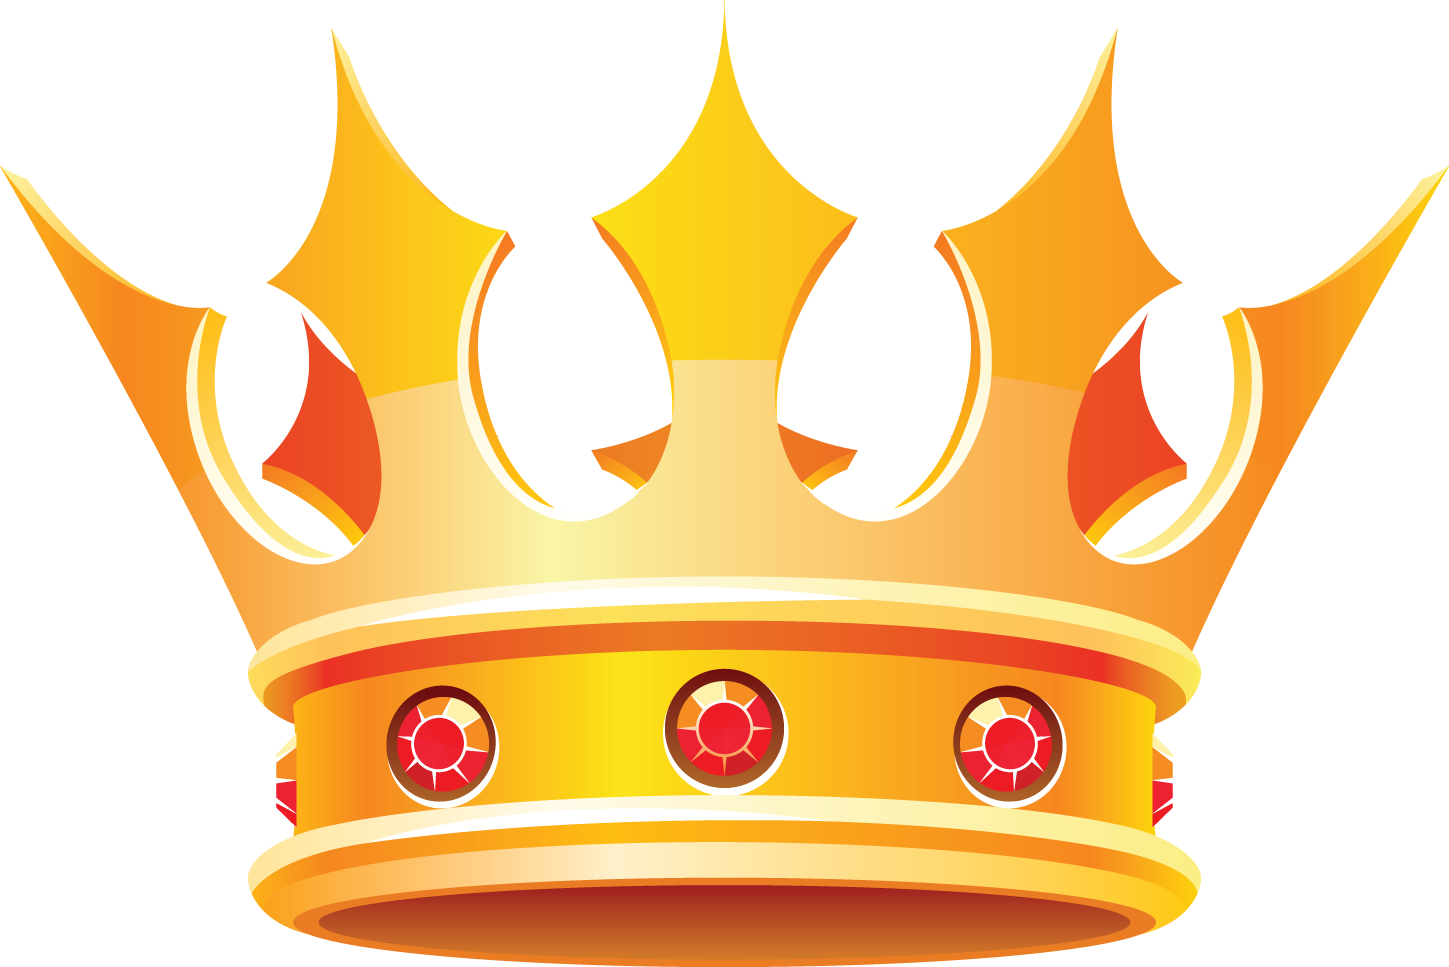 Kings crown png